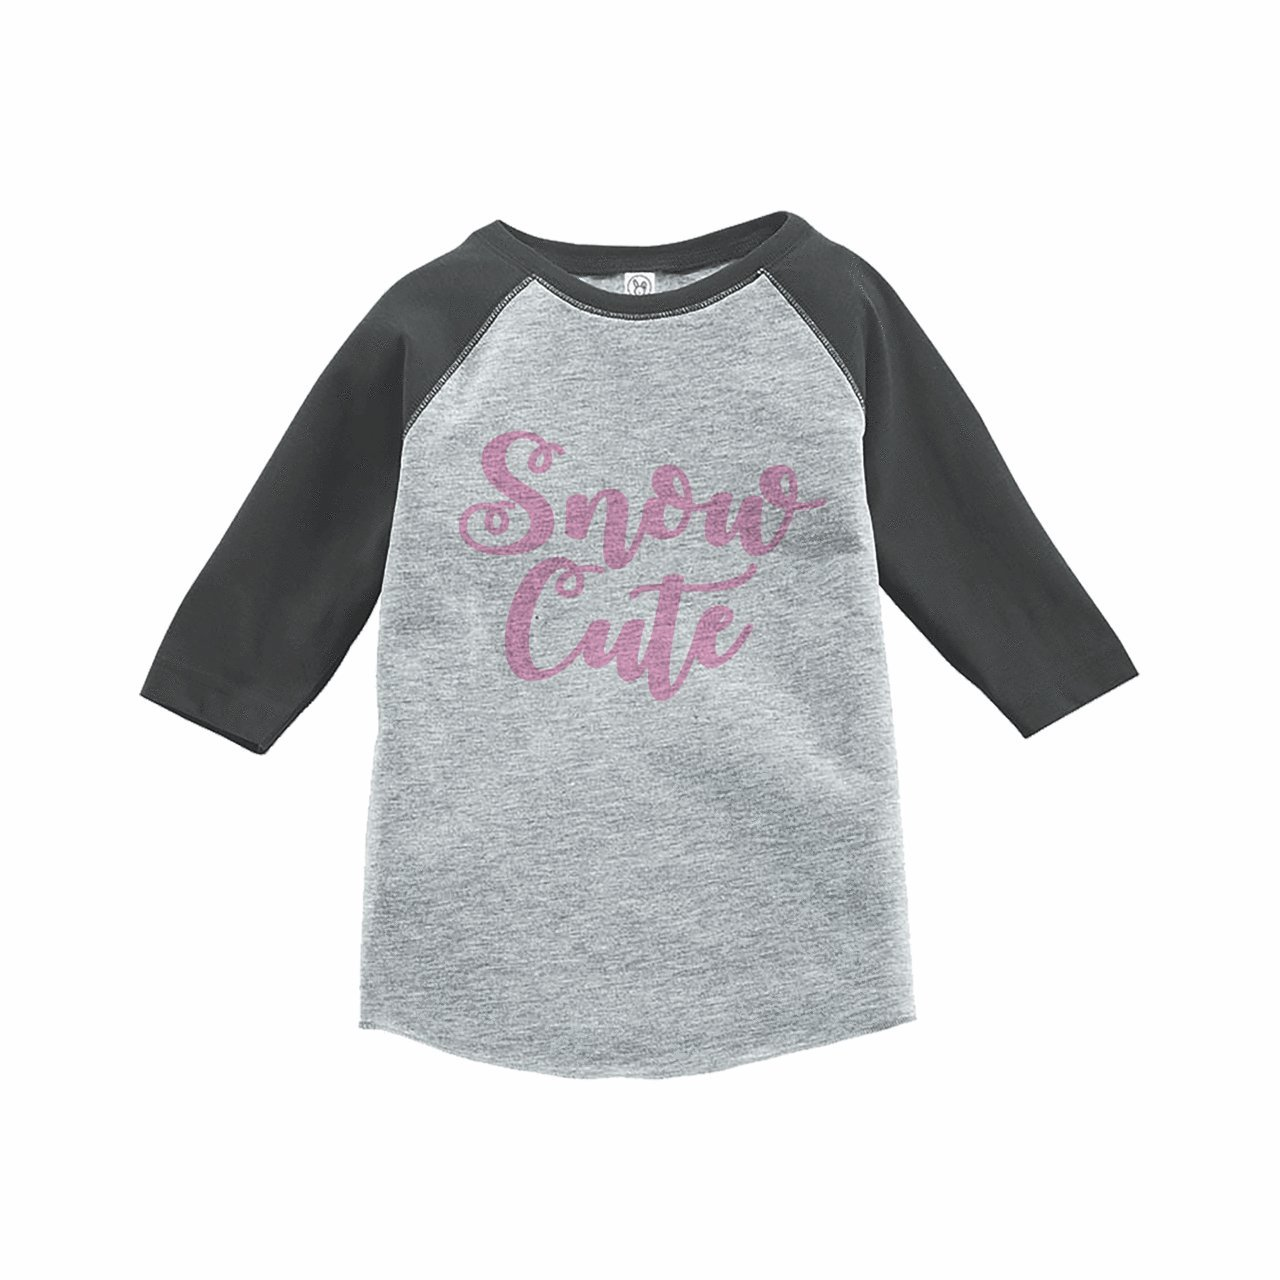 7 ate 9 Apparel Girls Snow Cute Winter Grey Raglan Tee